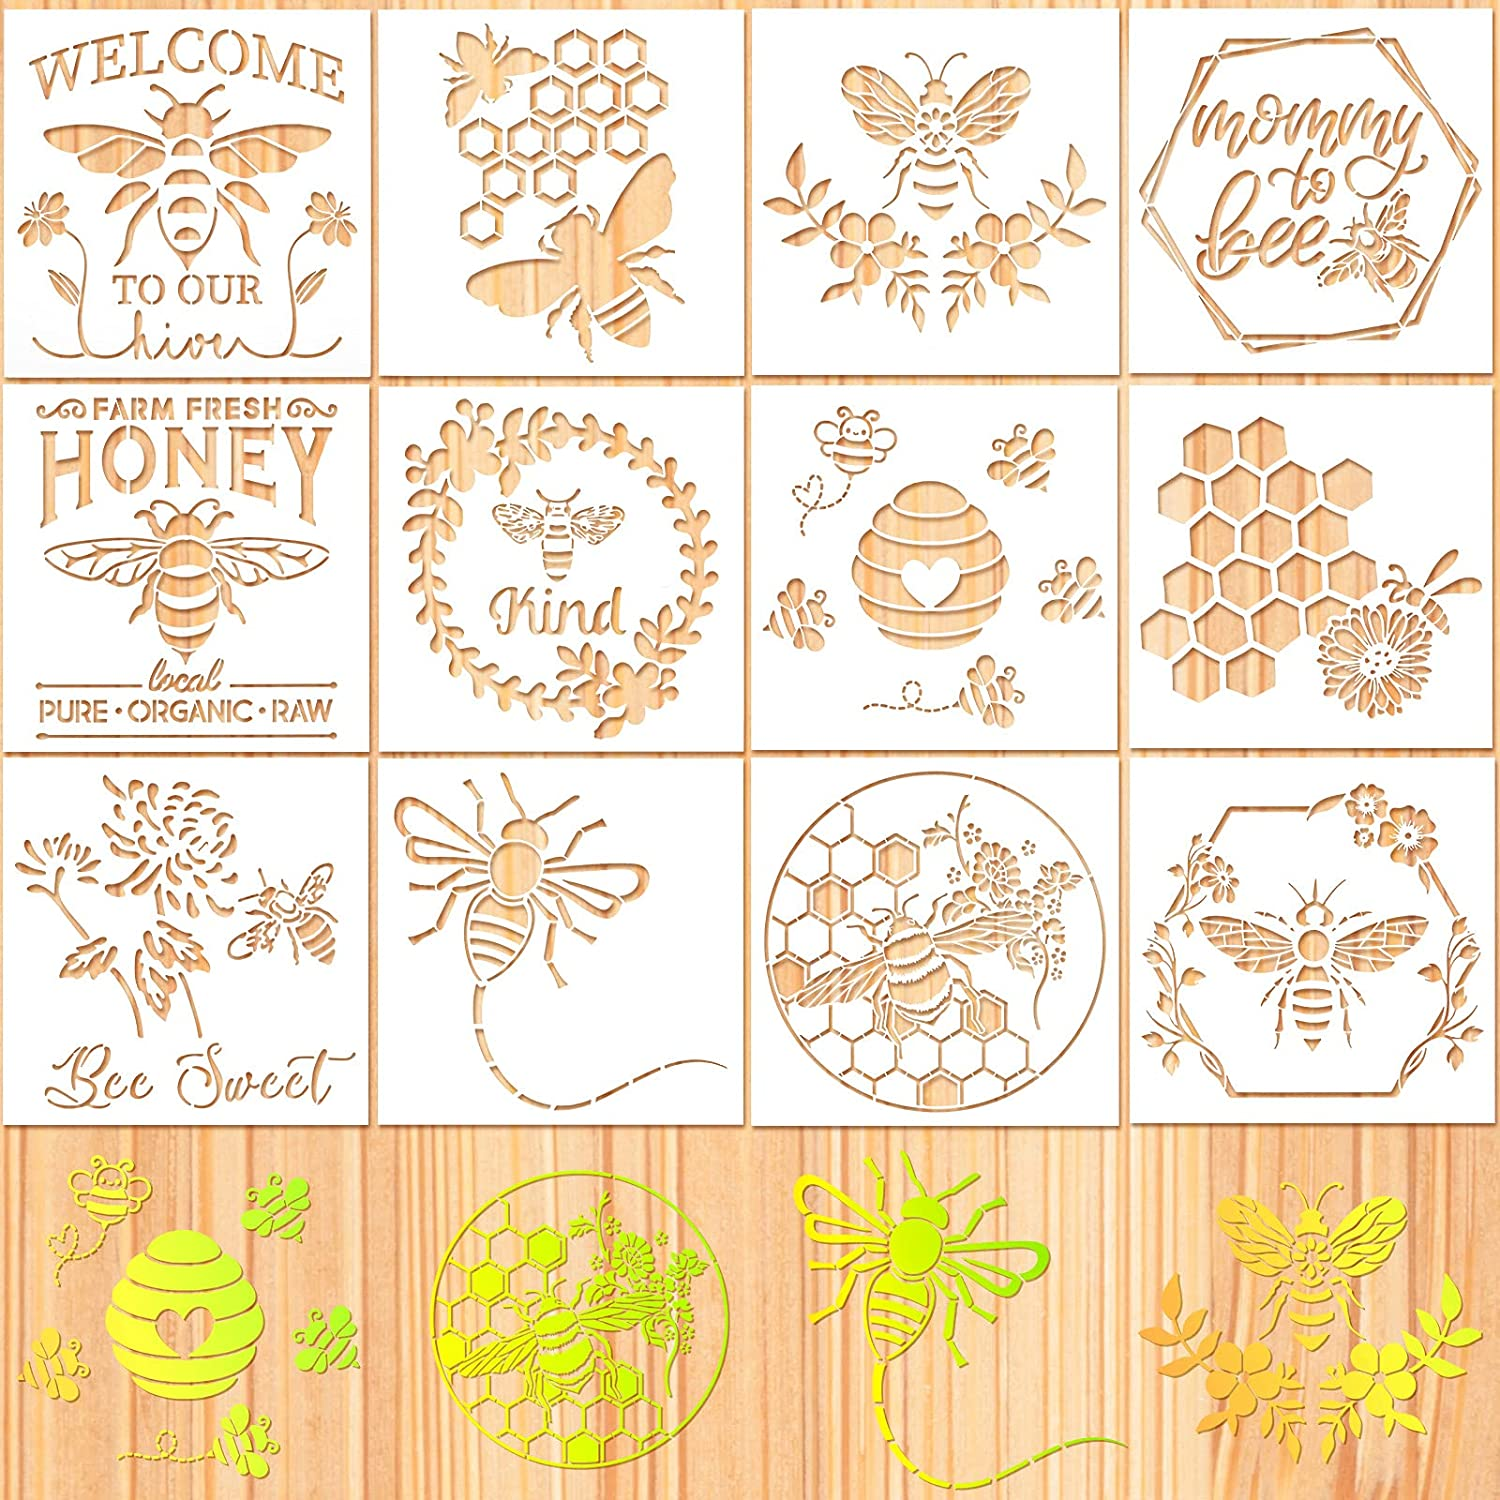 12 Pieces Bee Stencil Template Honeycomb Honey Stencils Reusable Mylar DIY Bee Sweet Template Welcome to Our Stencils for Painting on Wall Home Wood (8 x 8 Inches)